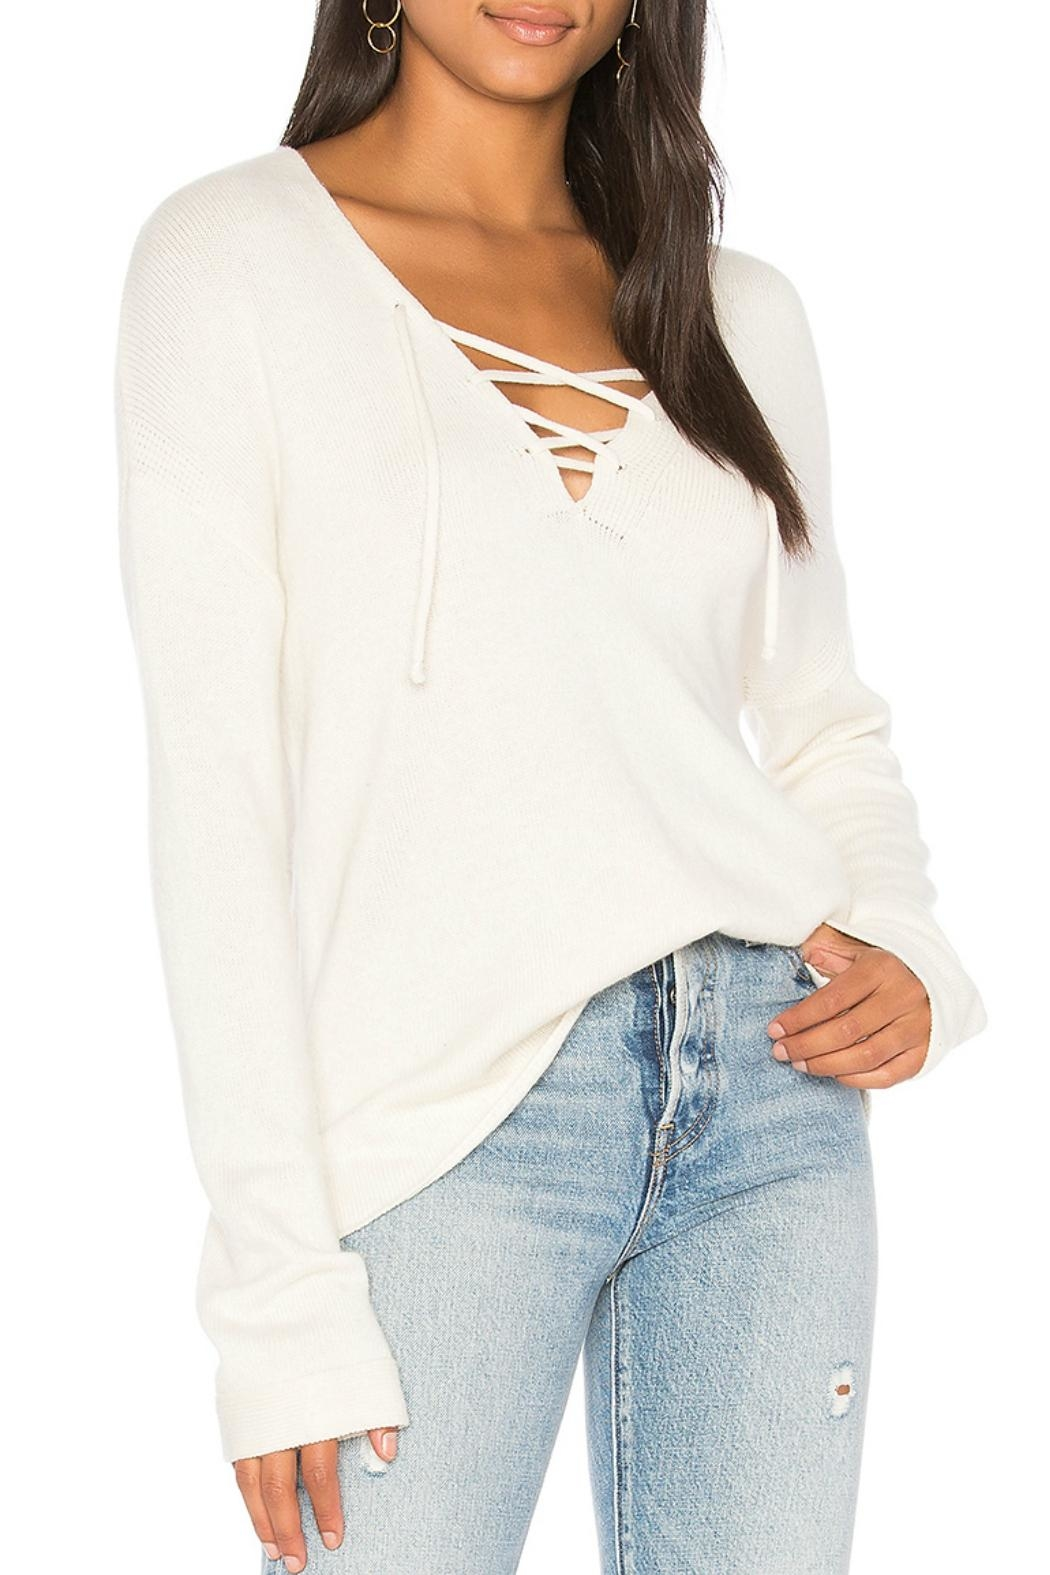 Joie Larken Tie-Up Sweater - Front Cropped Image